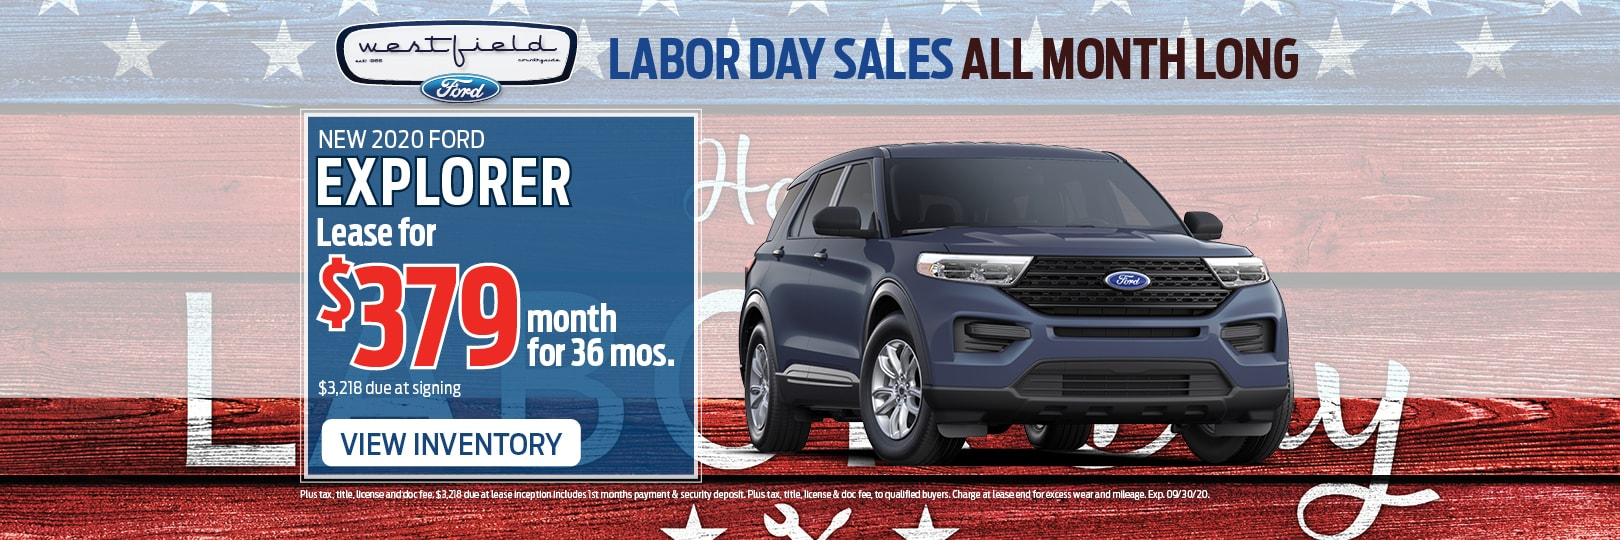 New 2020 Ford Explorer | Countryside, IL